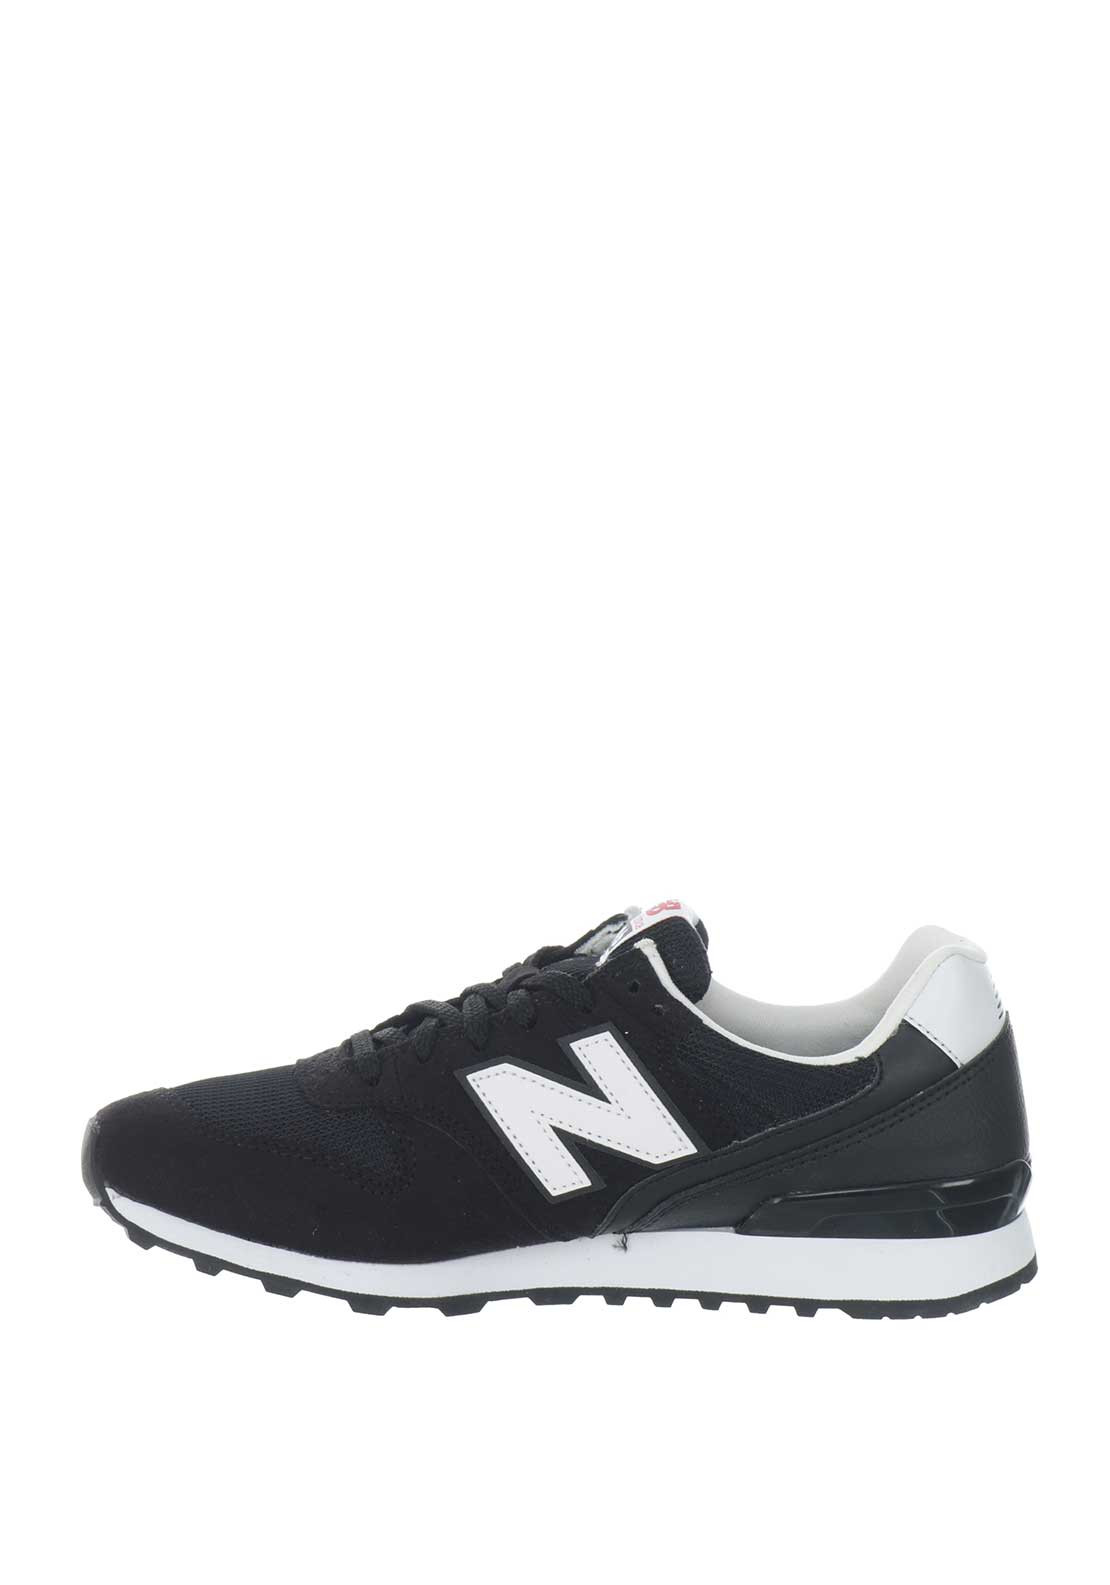 more photos cc9e5 3137d New Balance Womens Suede 996 Runners, Black